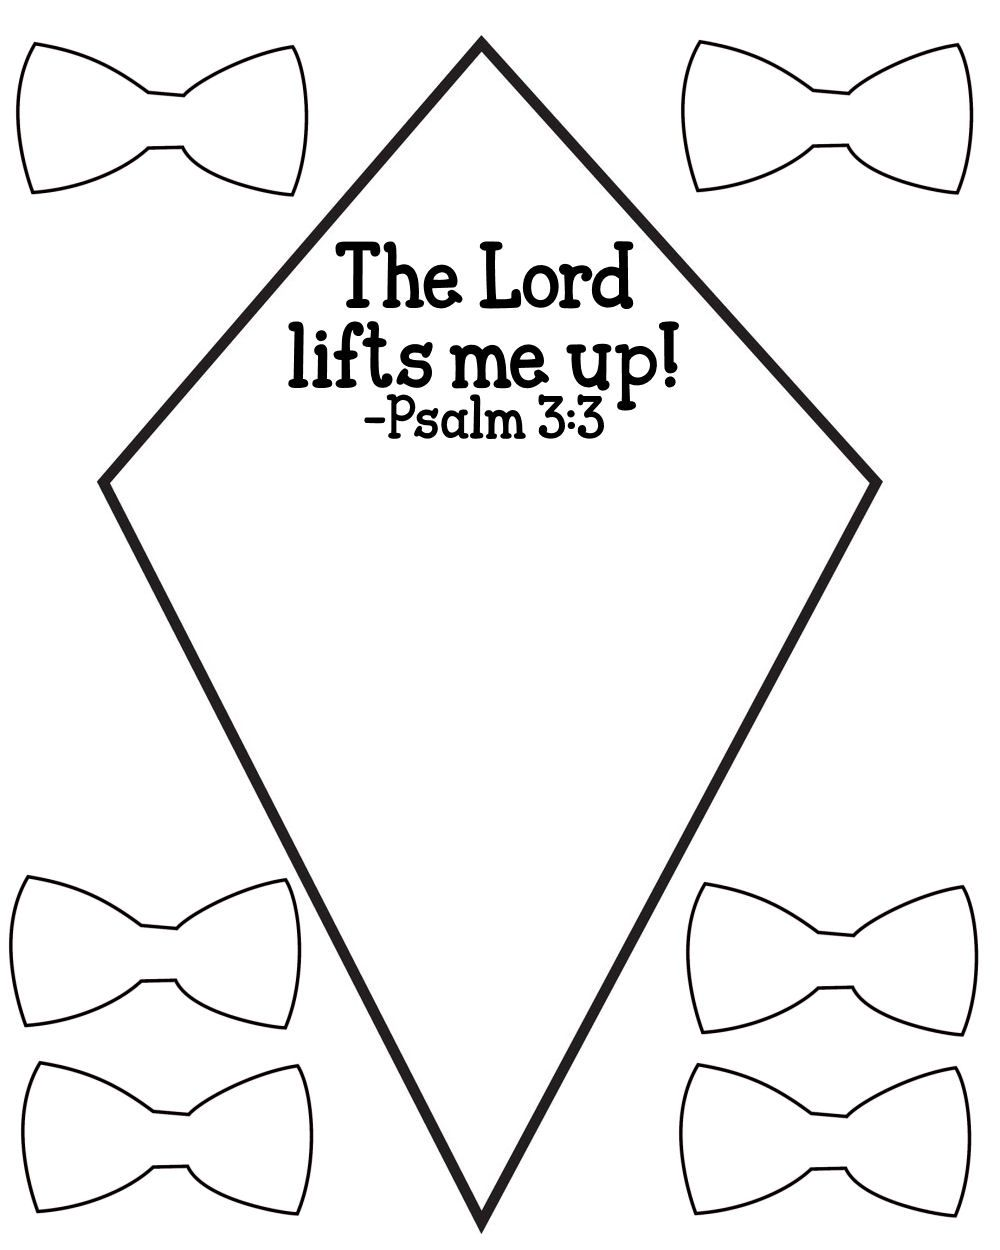 free psalm 33 kids bible lesson activity printables mysunwillshinecom - Children Printables